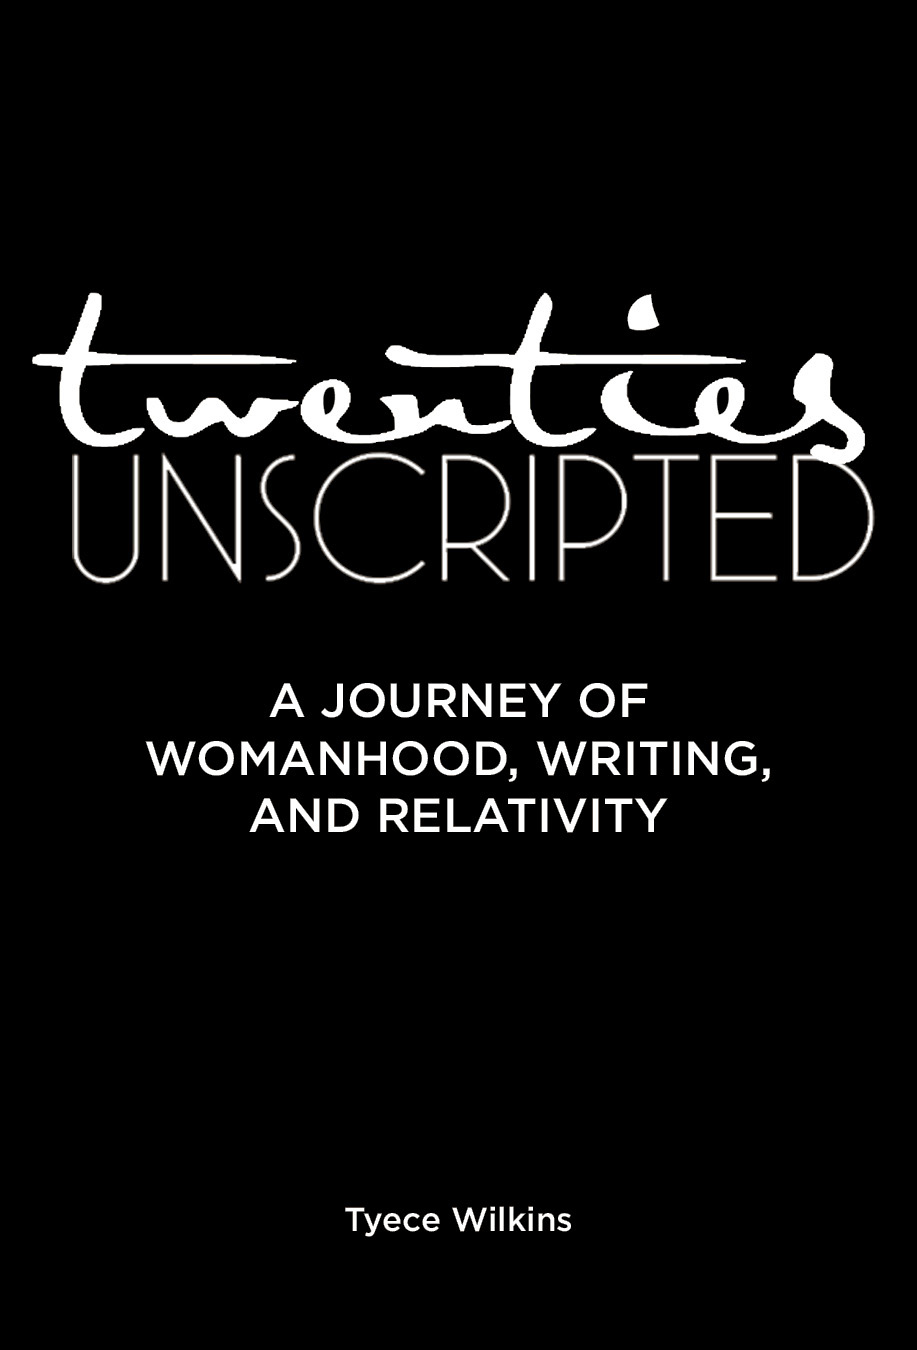 A Journey in Womanhood writing and relativity